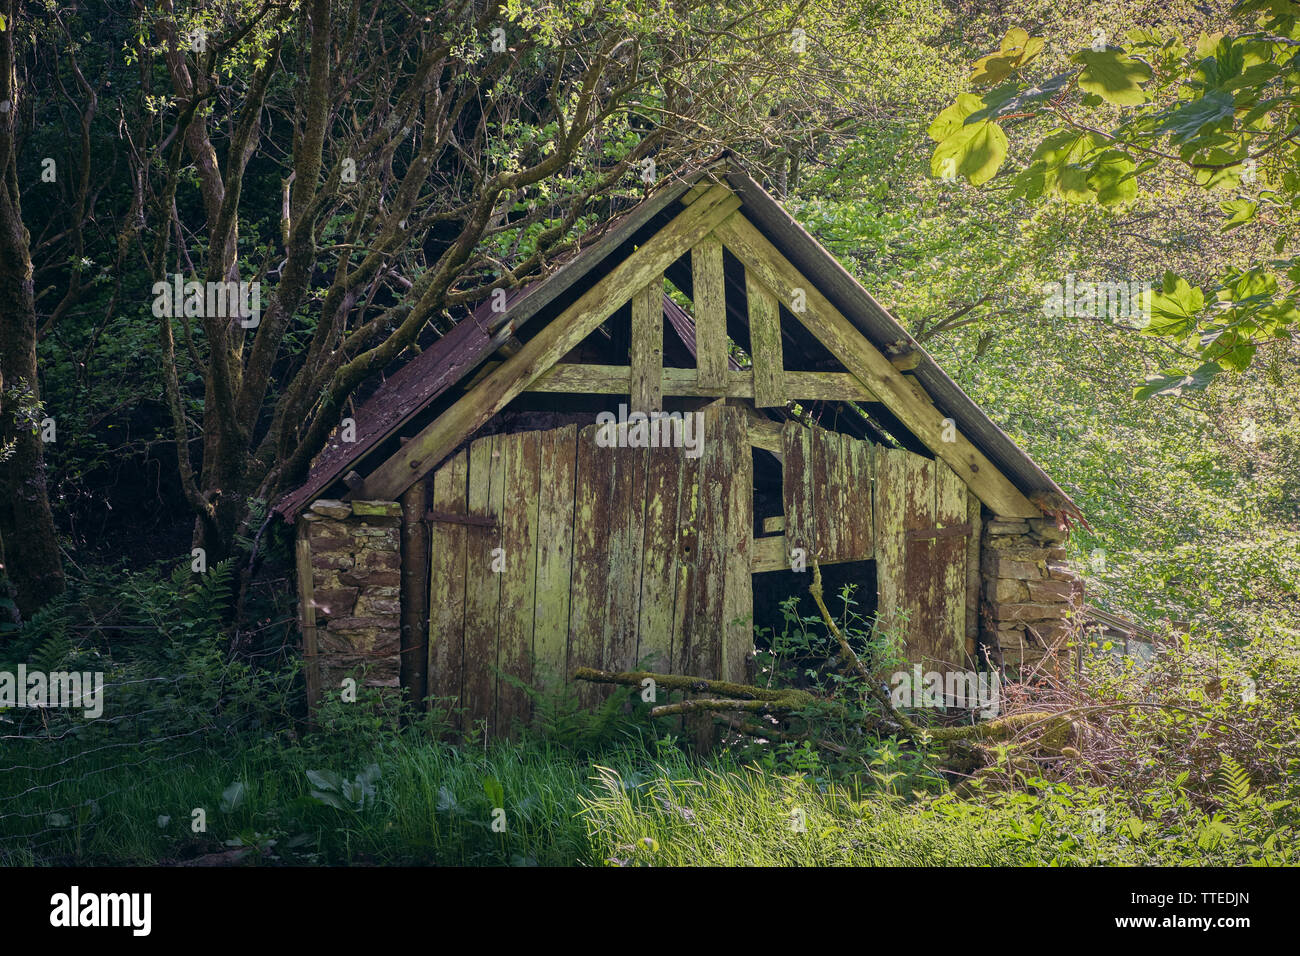 Old wooden shack in the countryside - Stock Image